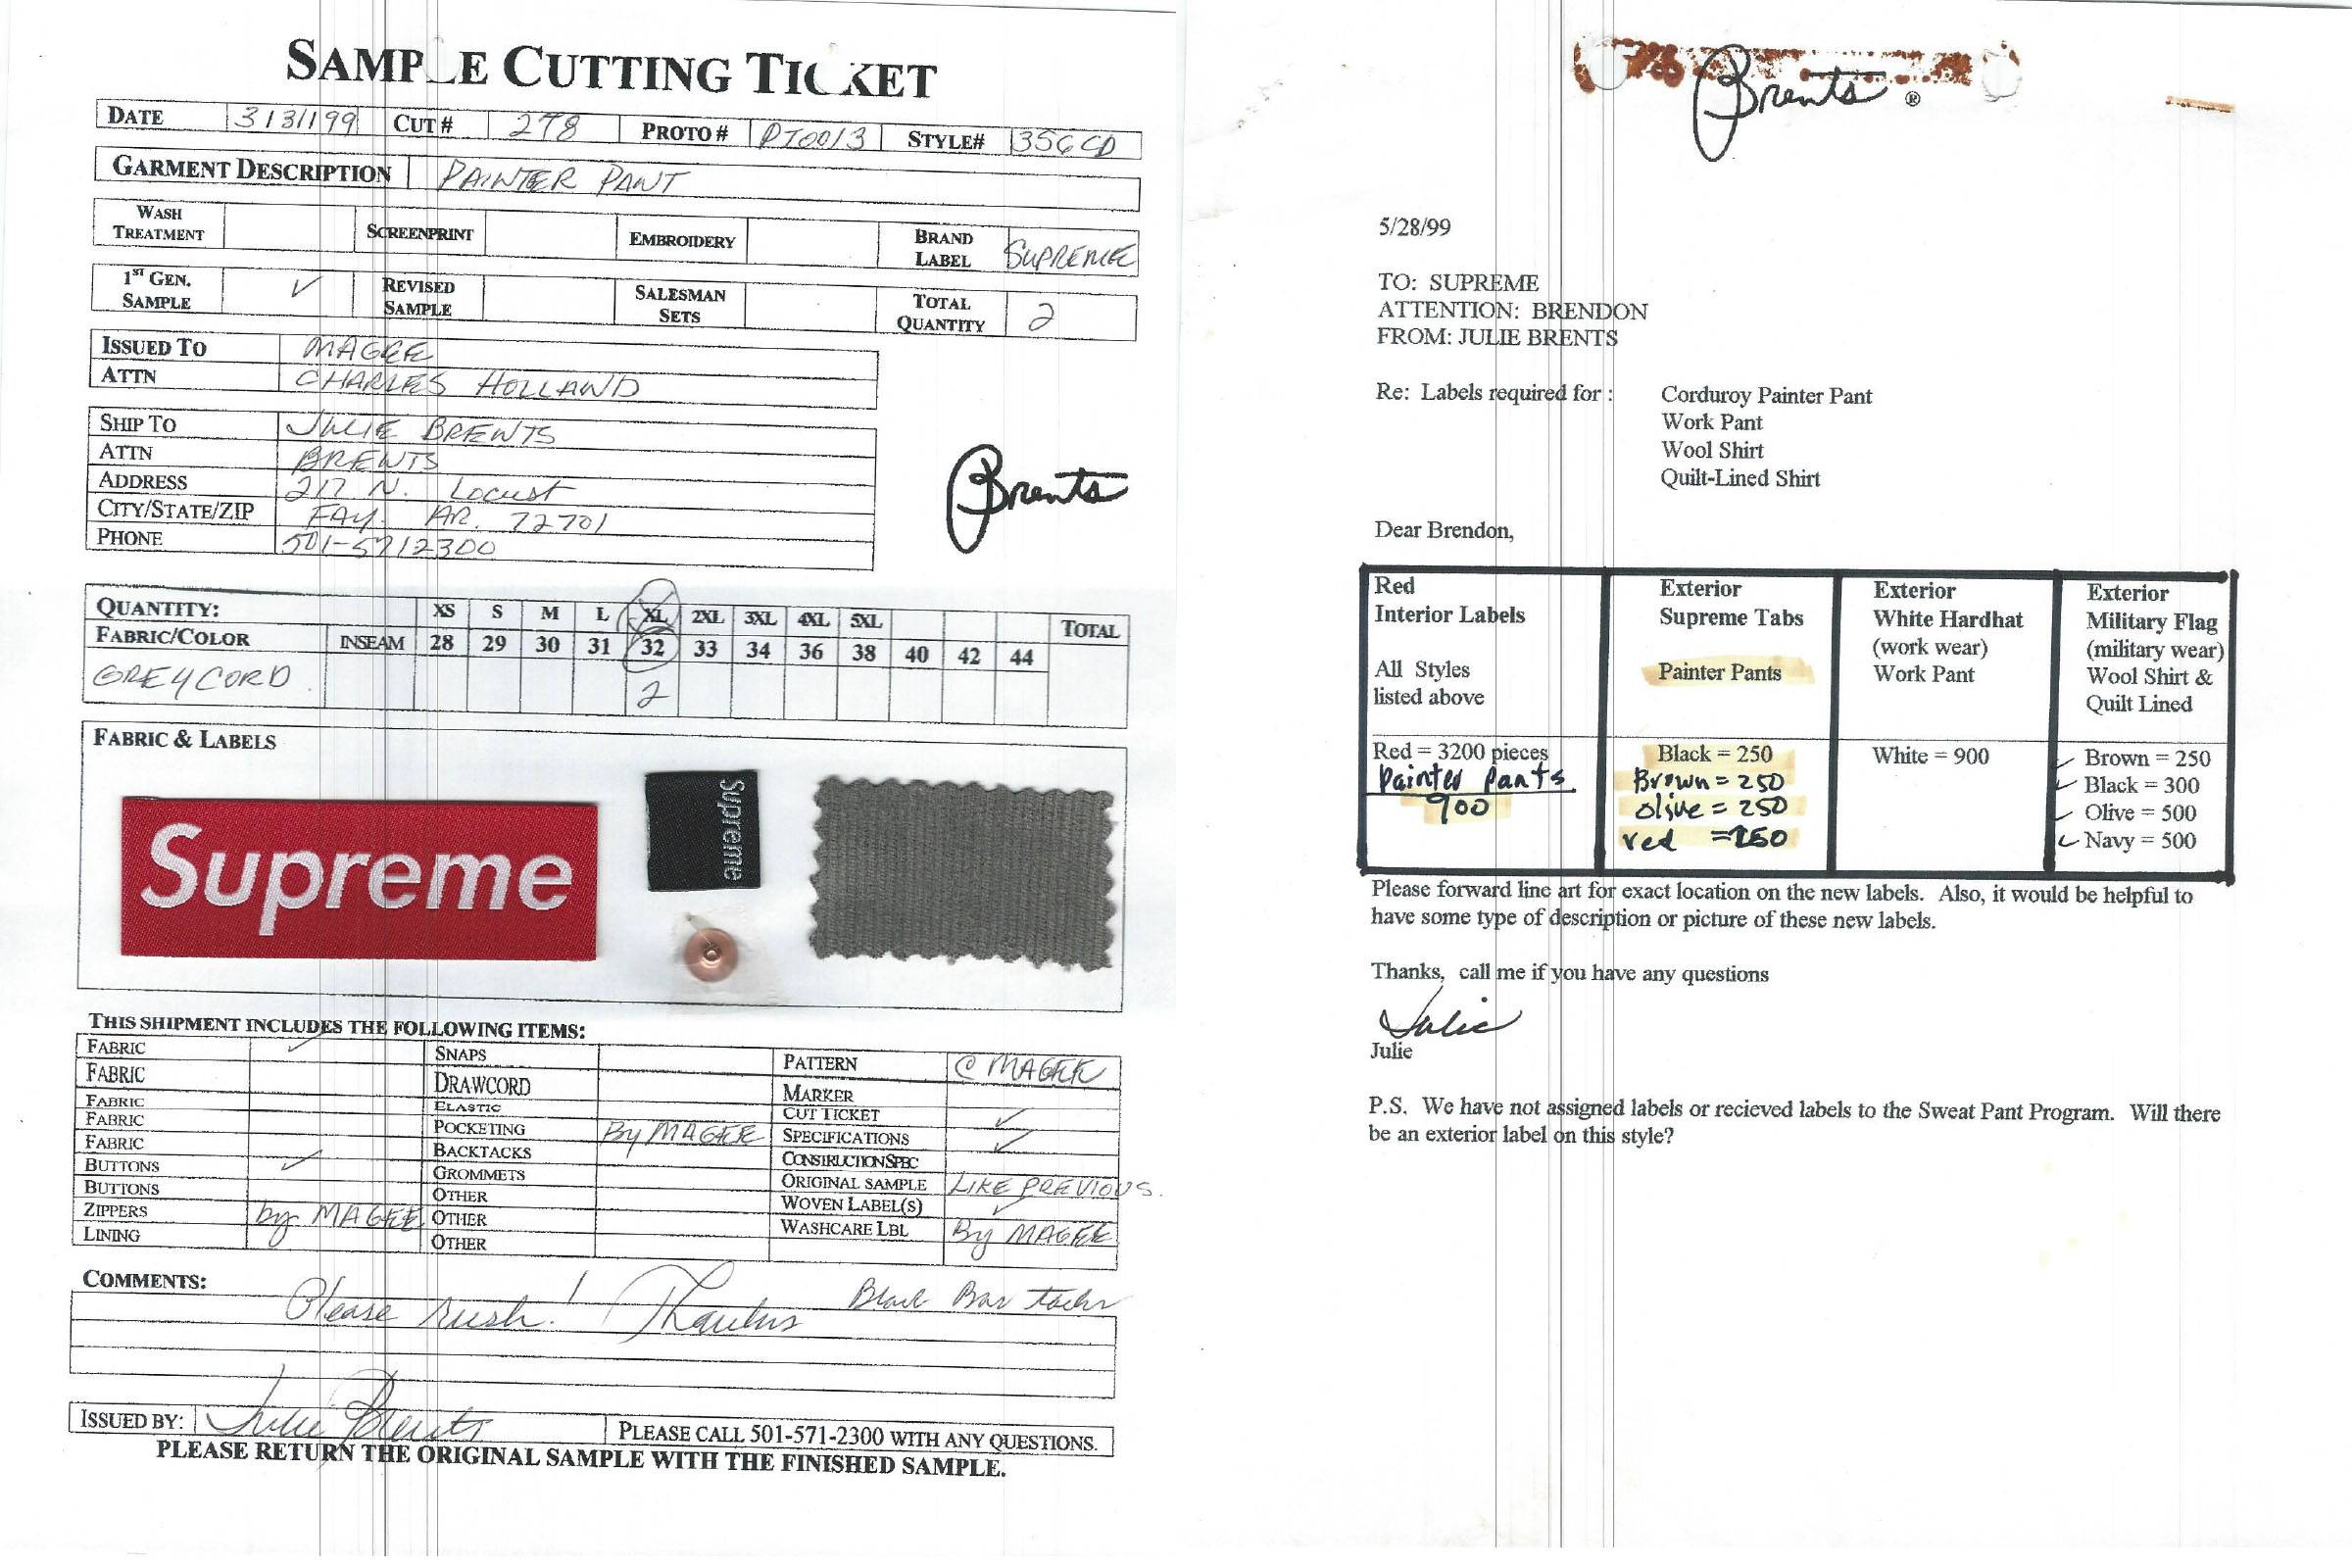 Sample cutting ticket for Supreme painter pants (left); Production correspondence between Brents and Supreme